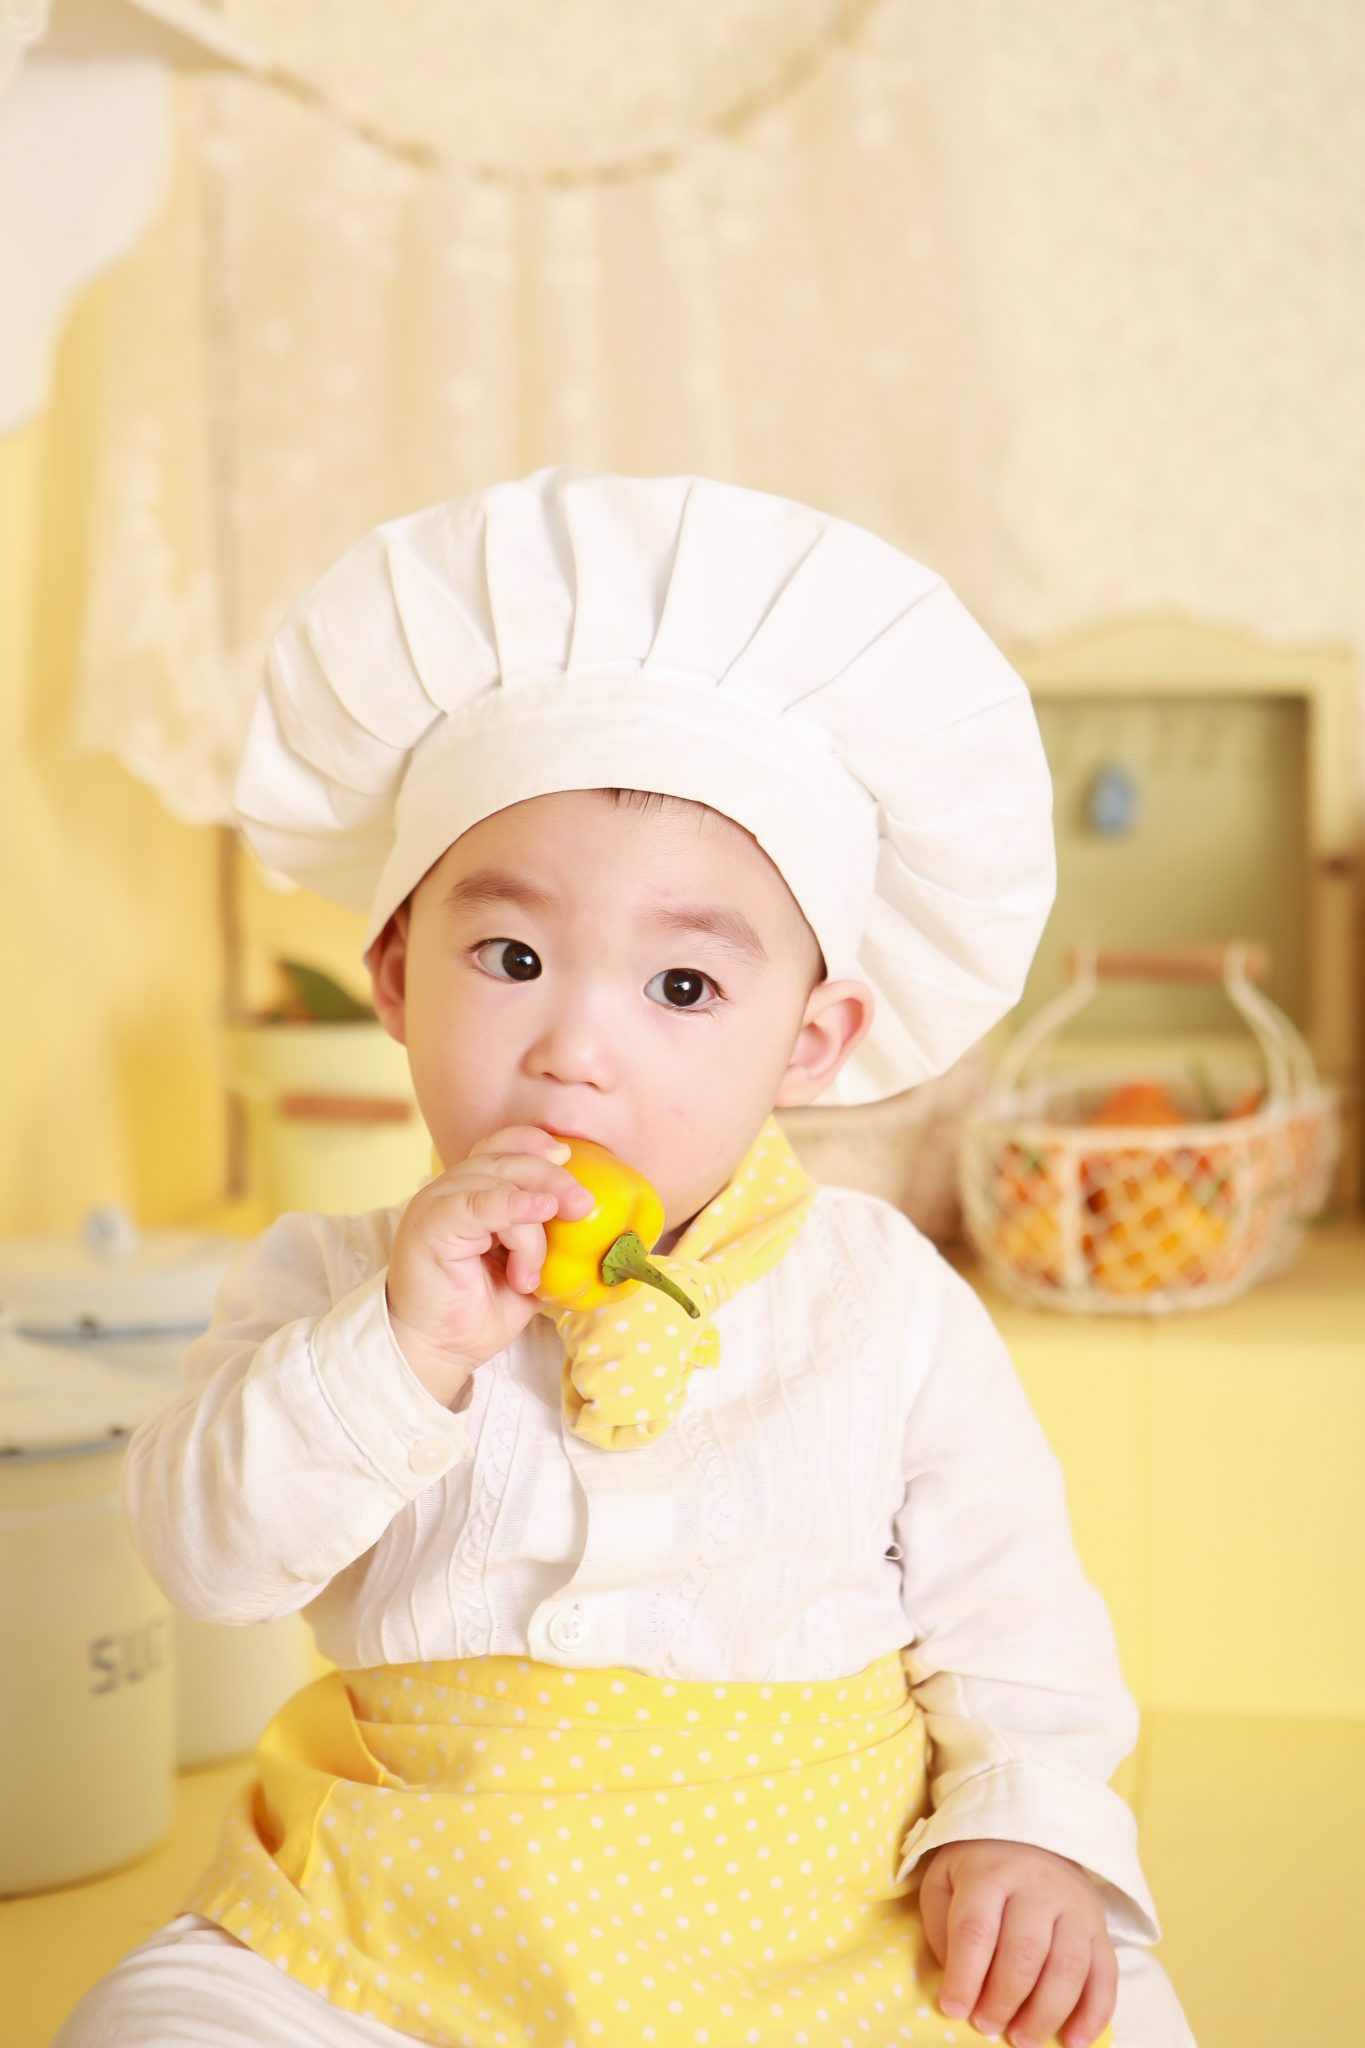 Tips to help fussy eaters